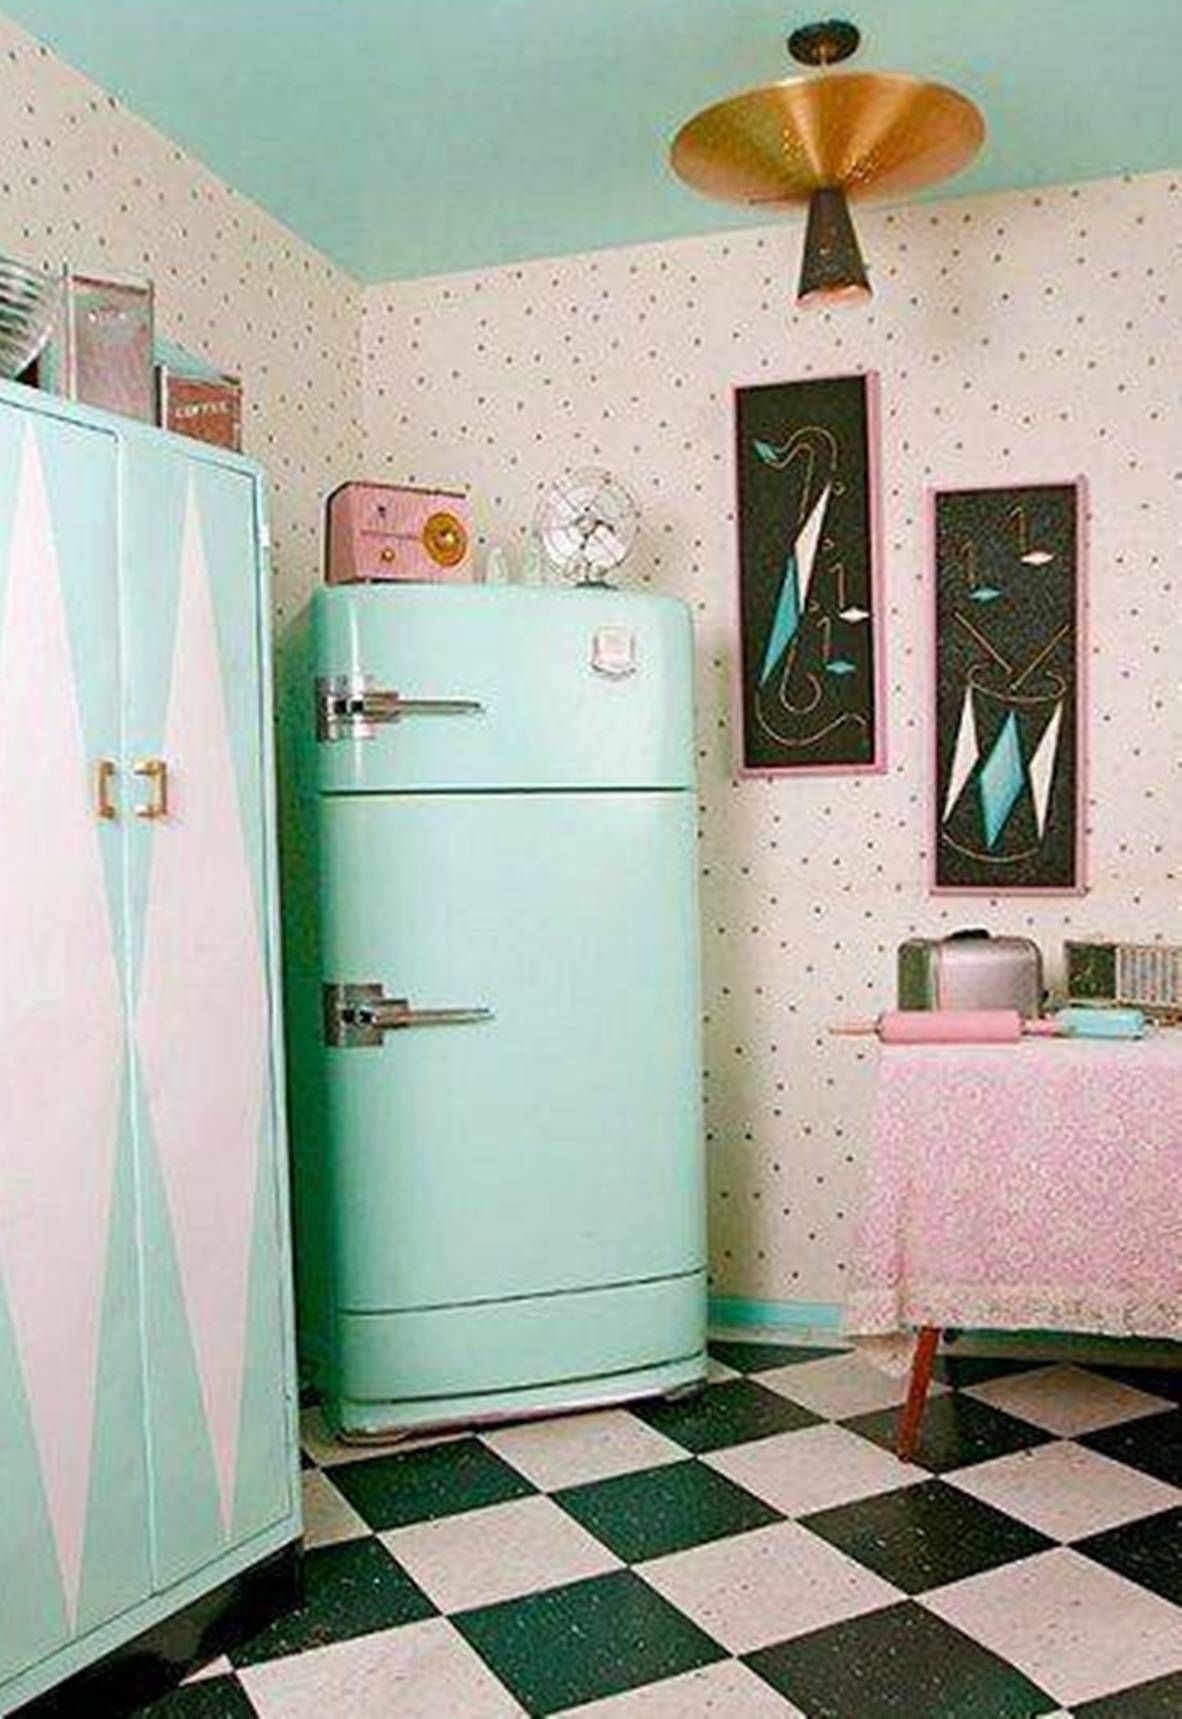 kitchen wallpaper designs Wallpapers